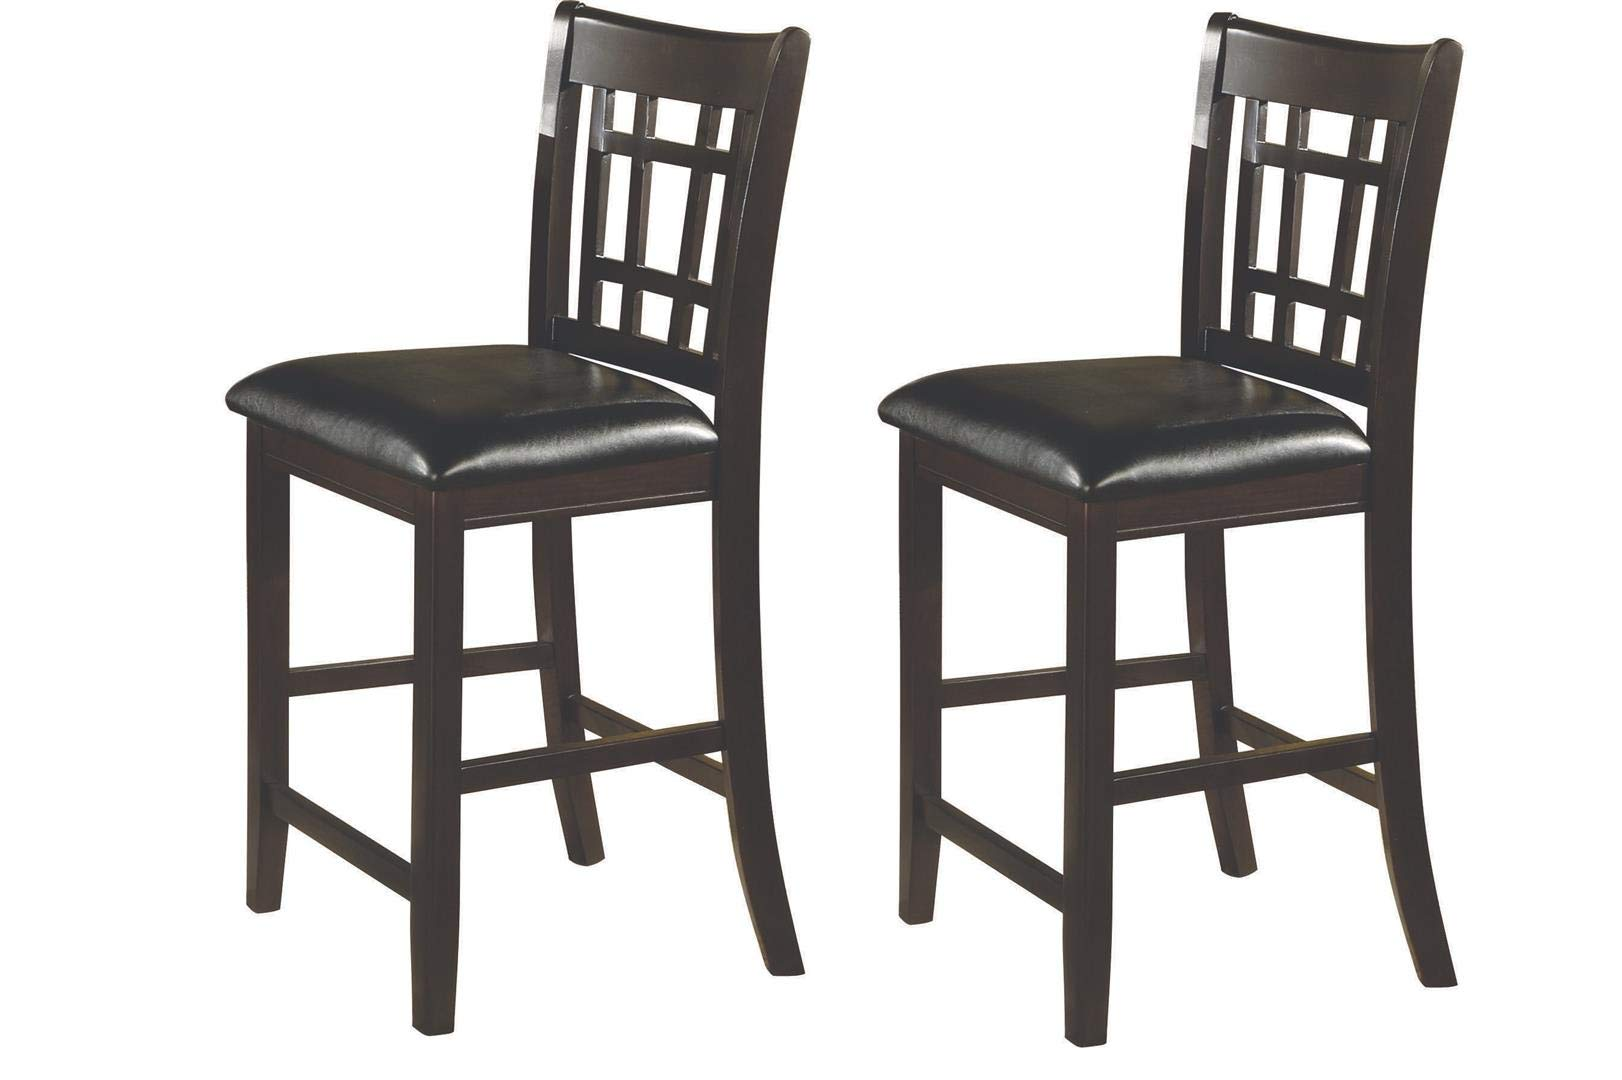 Lavon 24'' Counter Stools Black and Espresso (Set of 2) by Coaster Home Furnishings